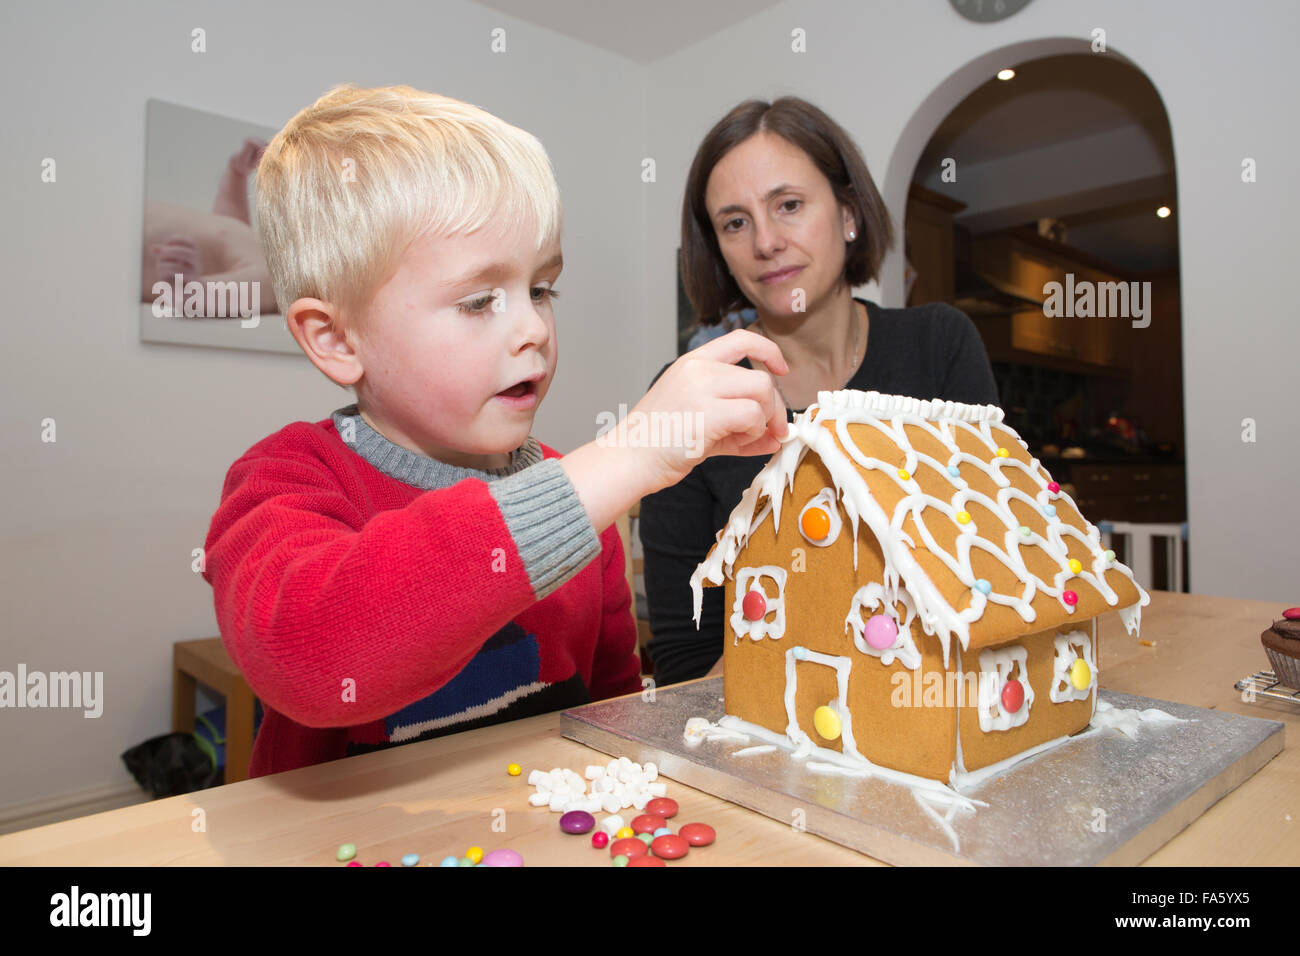 5 year old boy building a Gingerbread house made of gingerbread ahead of the Christmas festivities, UK - Stock Image